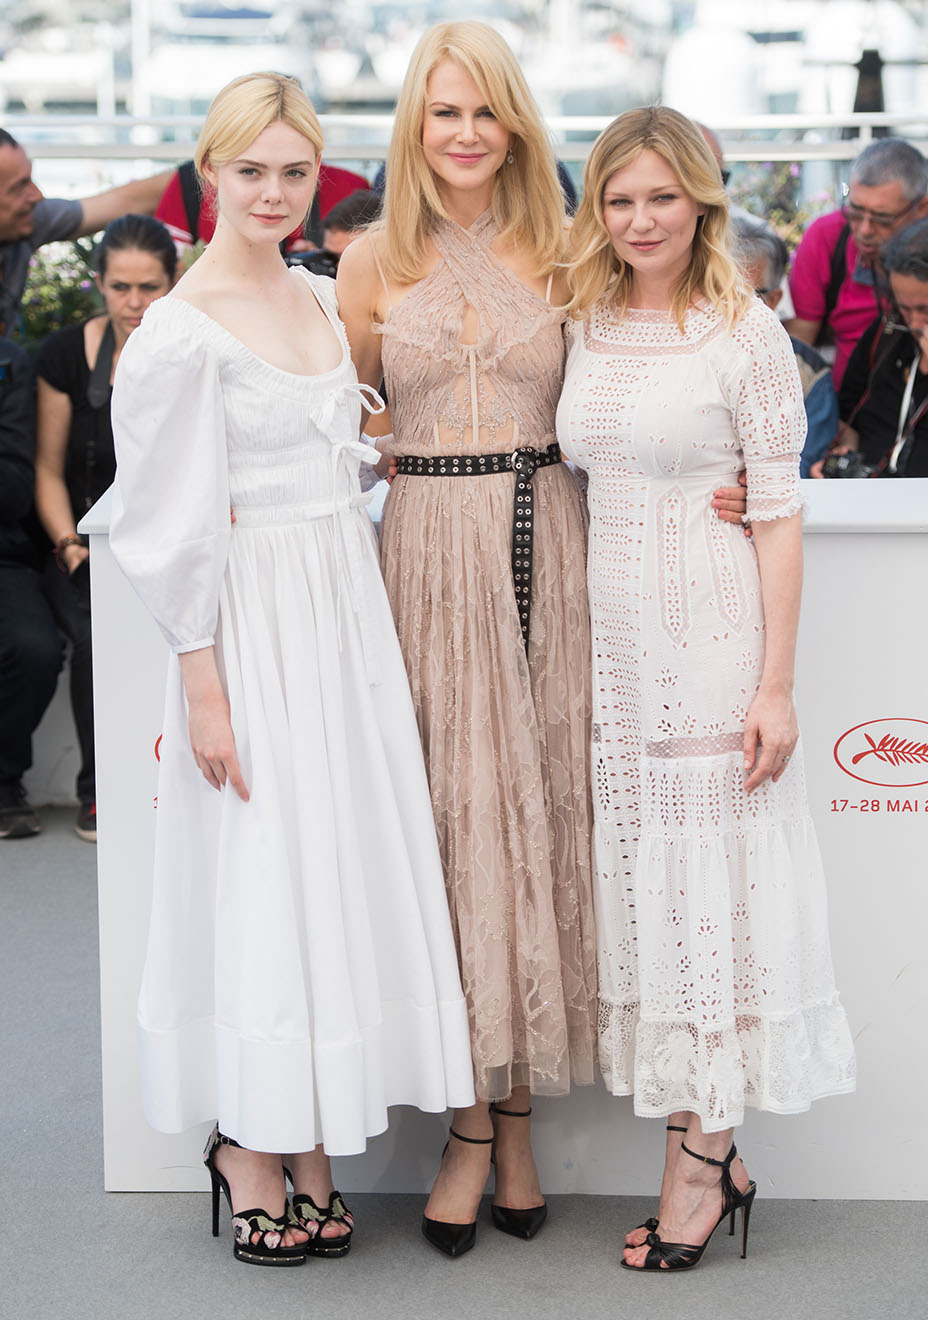 The Beguiled Style I Elle Fanning, Nicole Kidman and Kirsten Dunst at the Cannes Film Festival 'The Beguiled' photocall